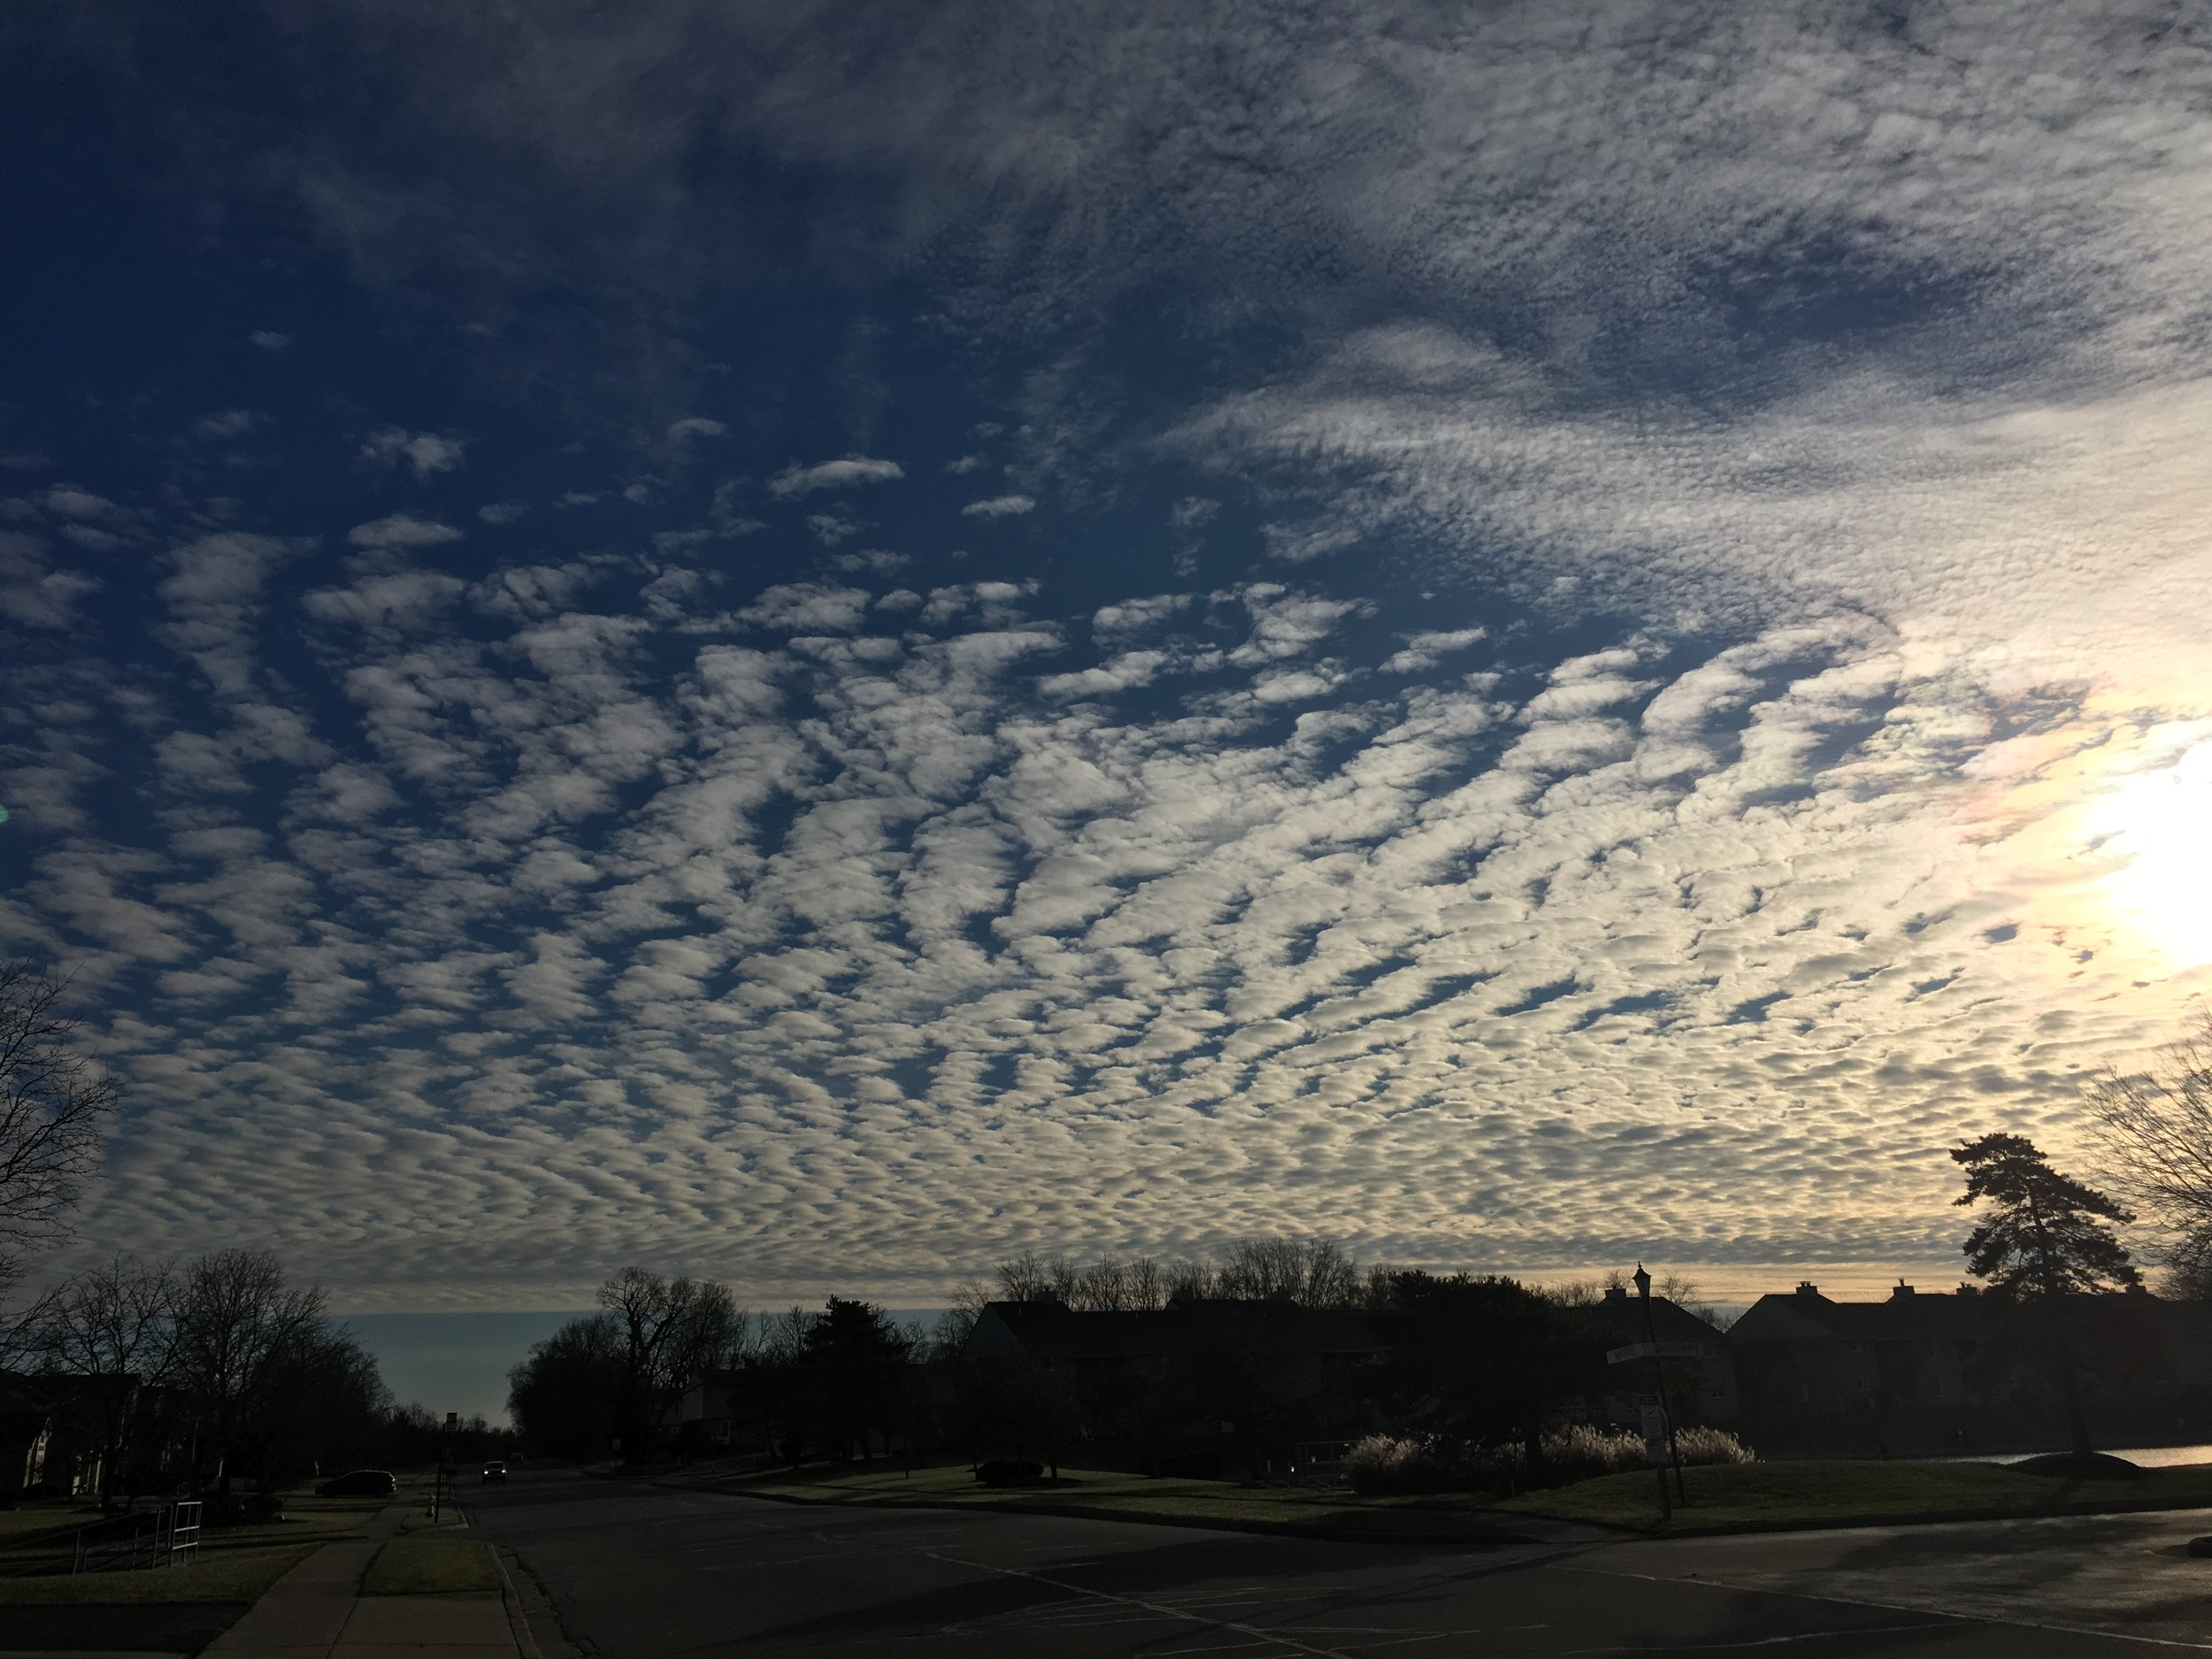 Sky over Centerville, OH